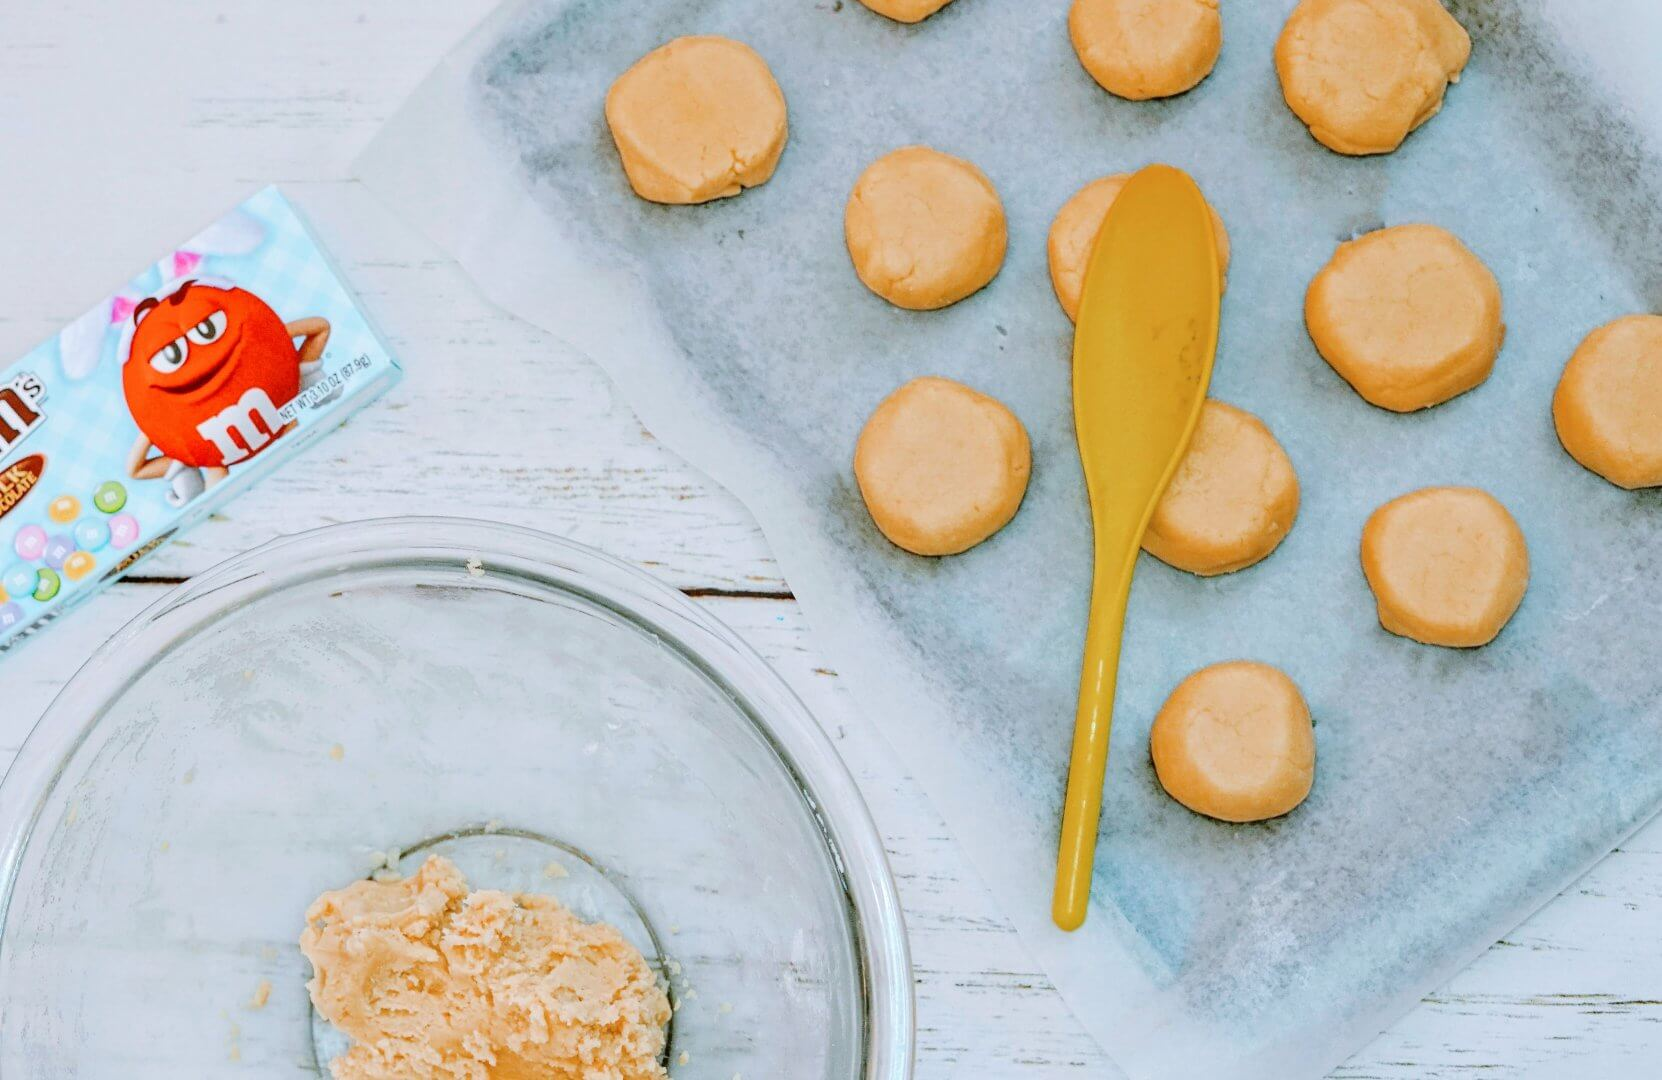 Decorating Sugar Cookies with Chocolate Candies on Baking Sheet